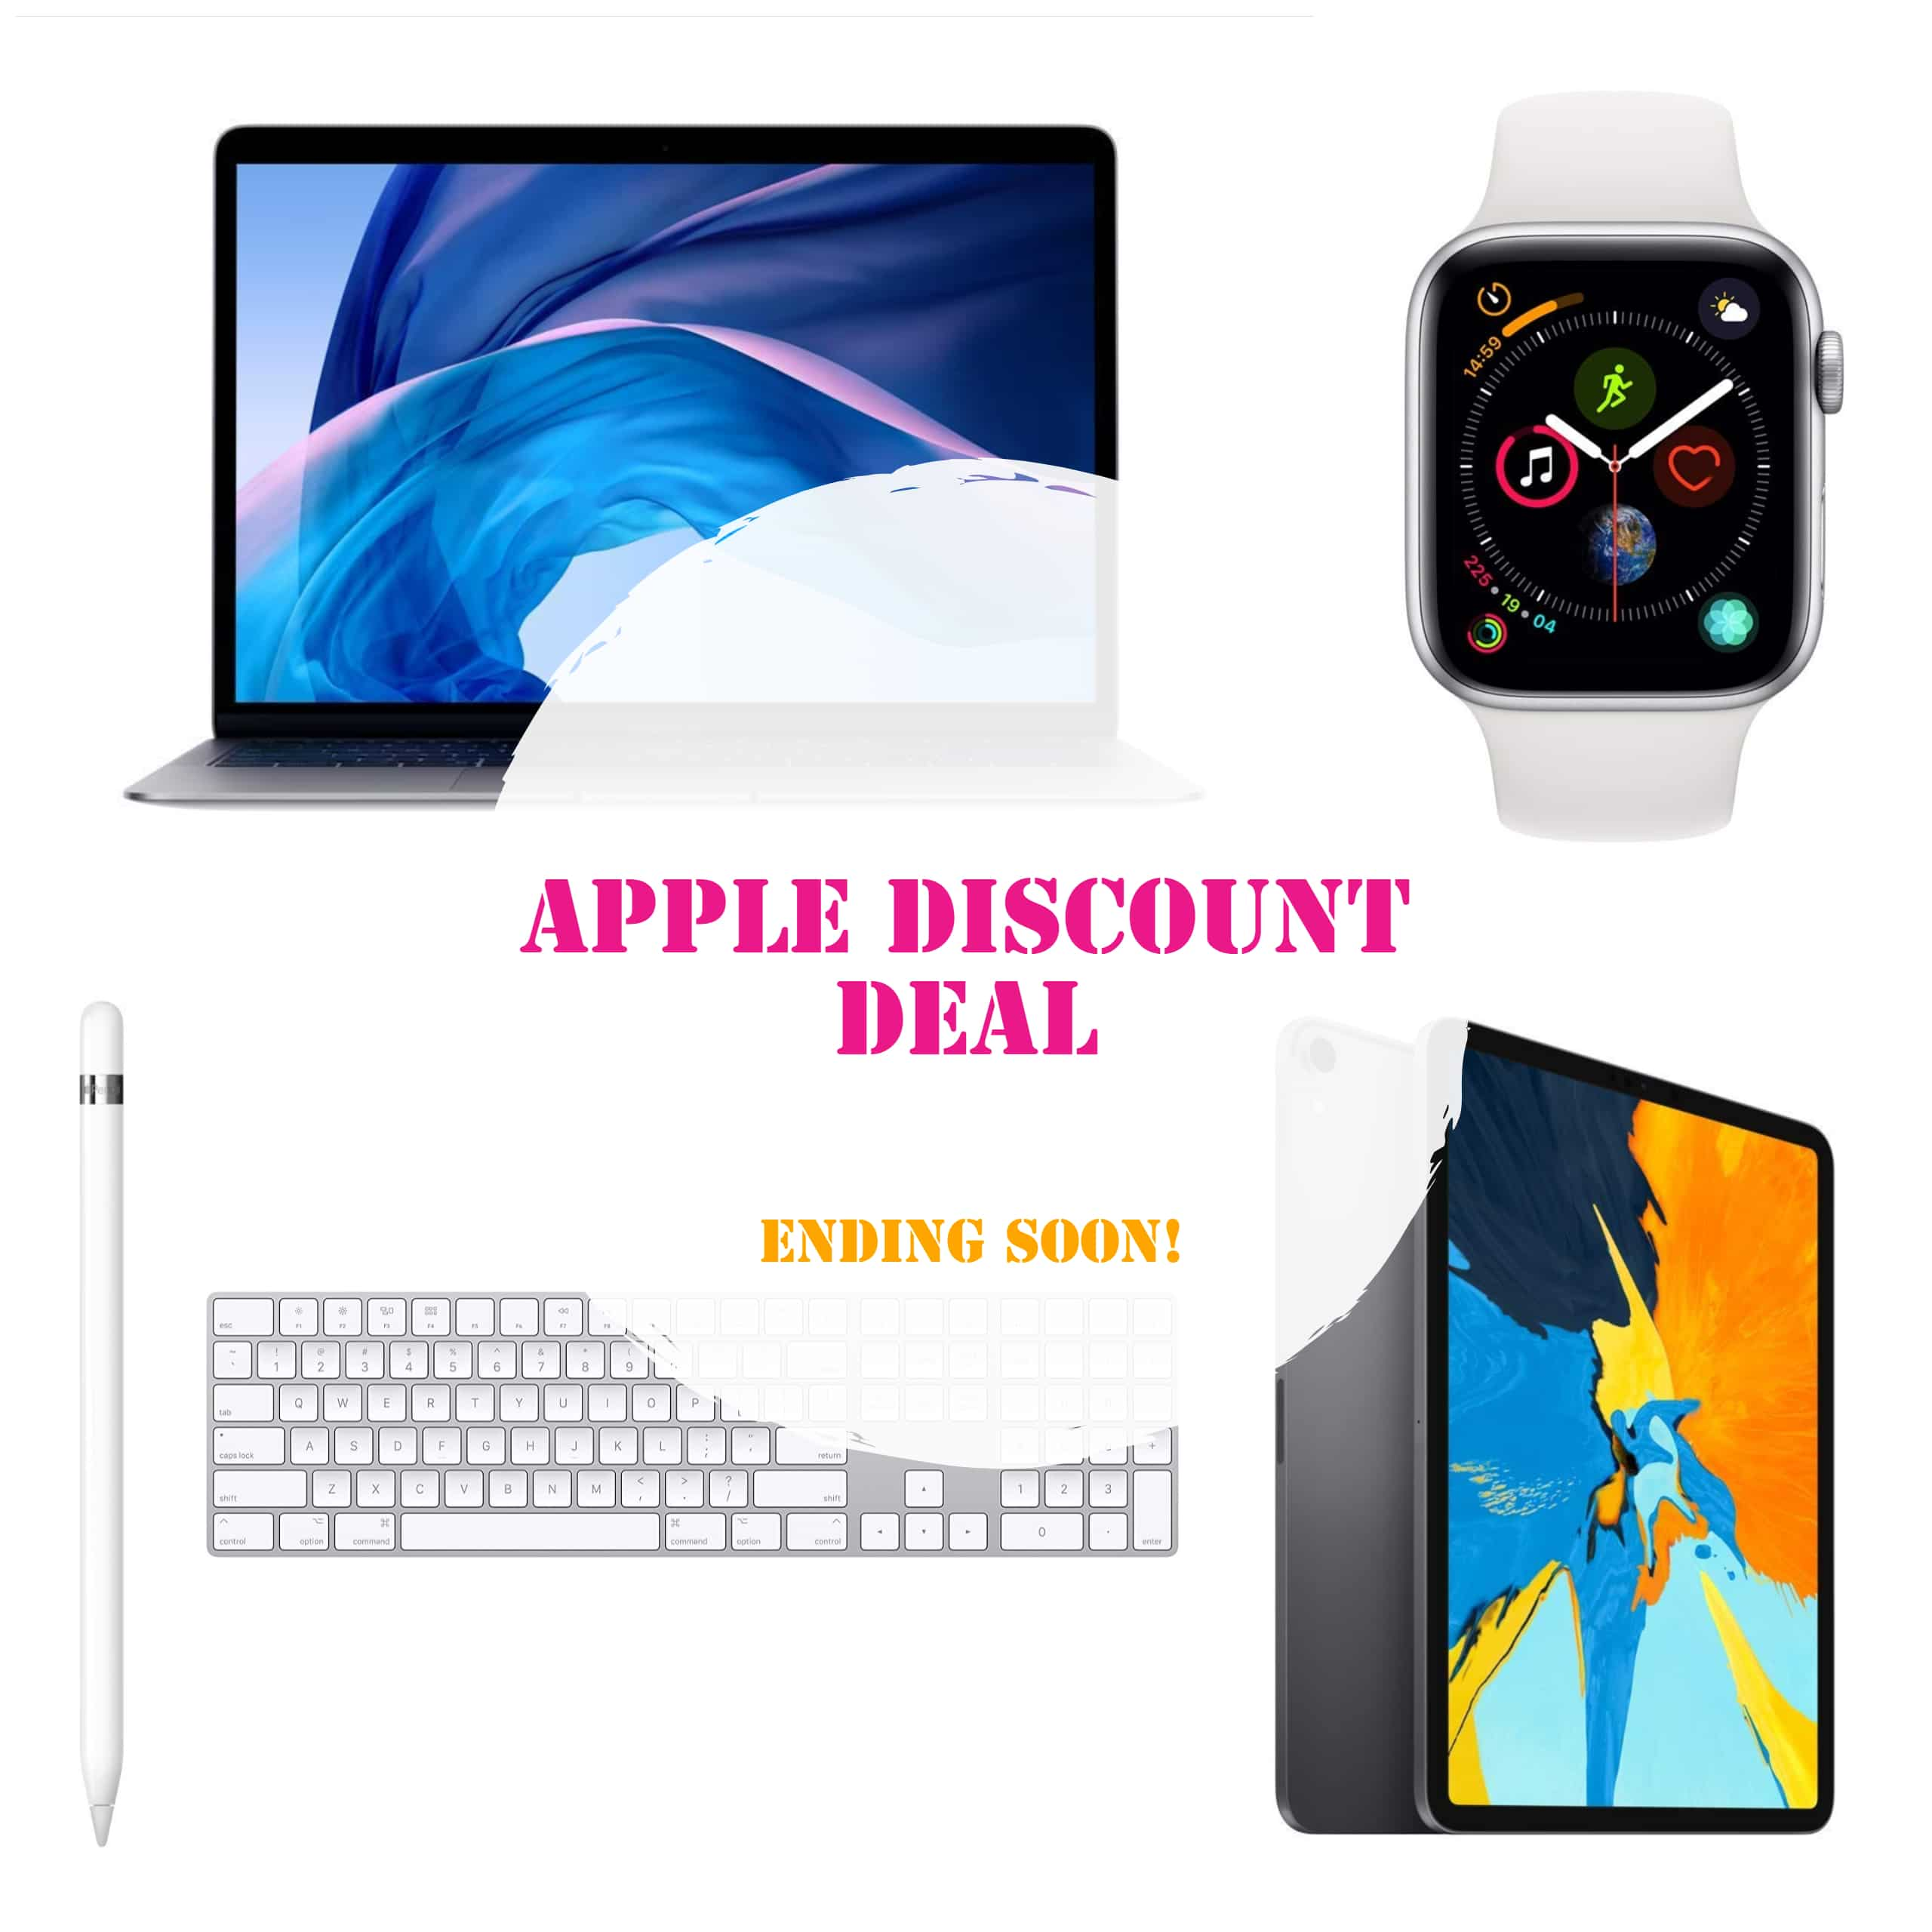 Apple Discount Deal Amazon (2)